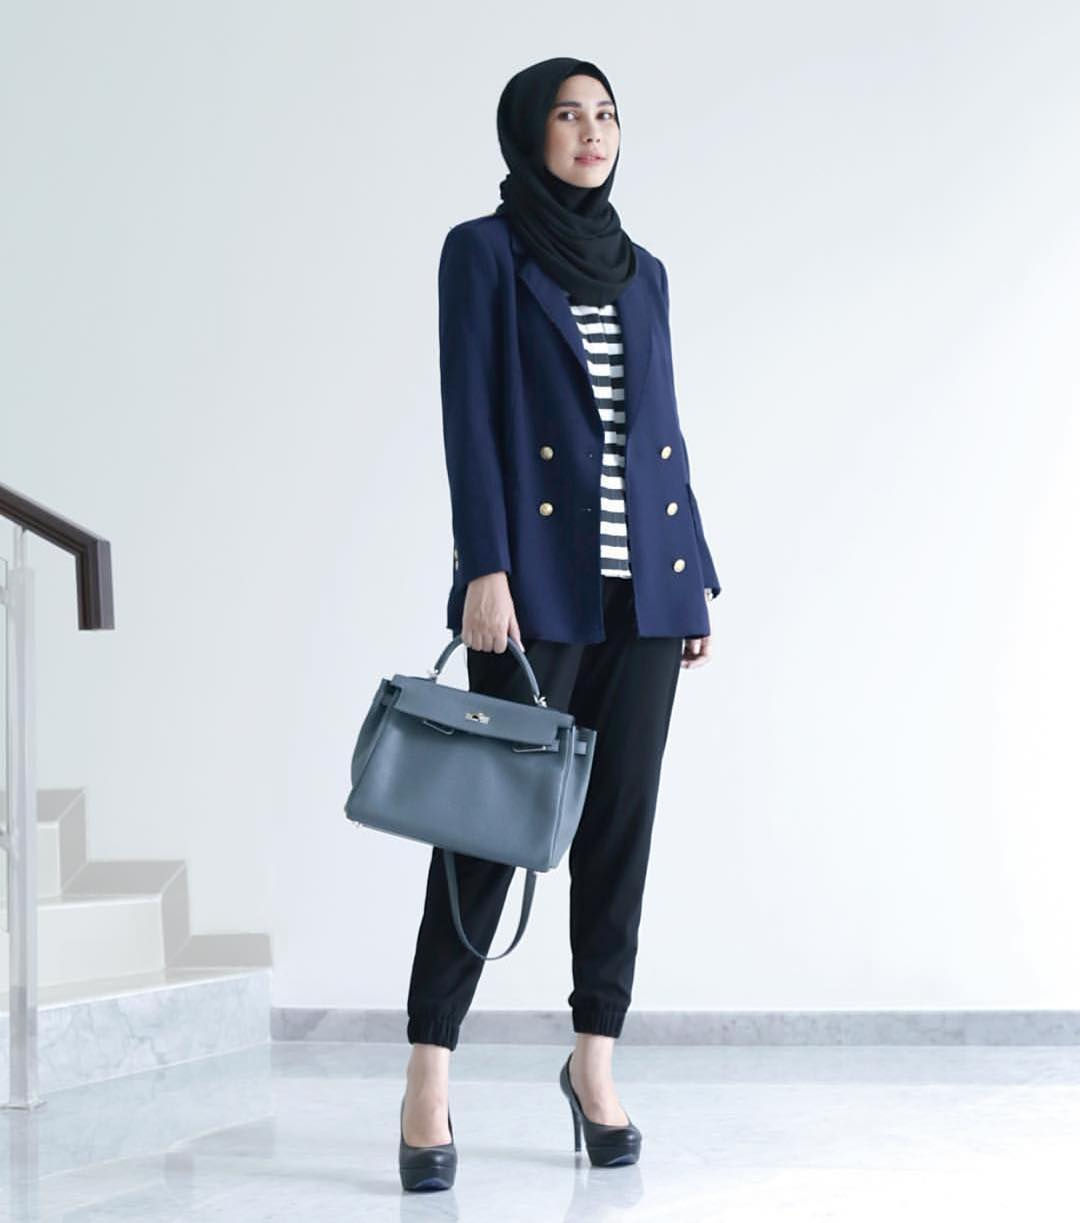 hijab fashion14